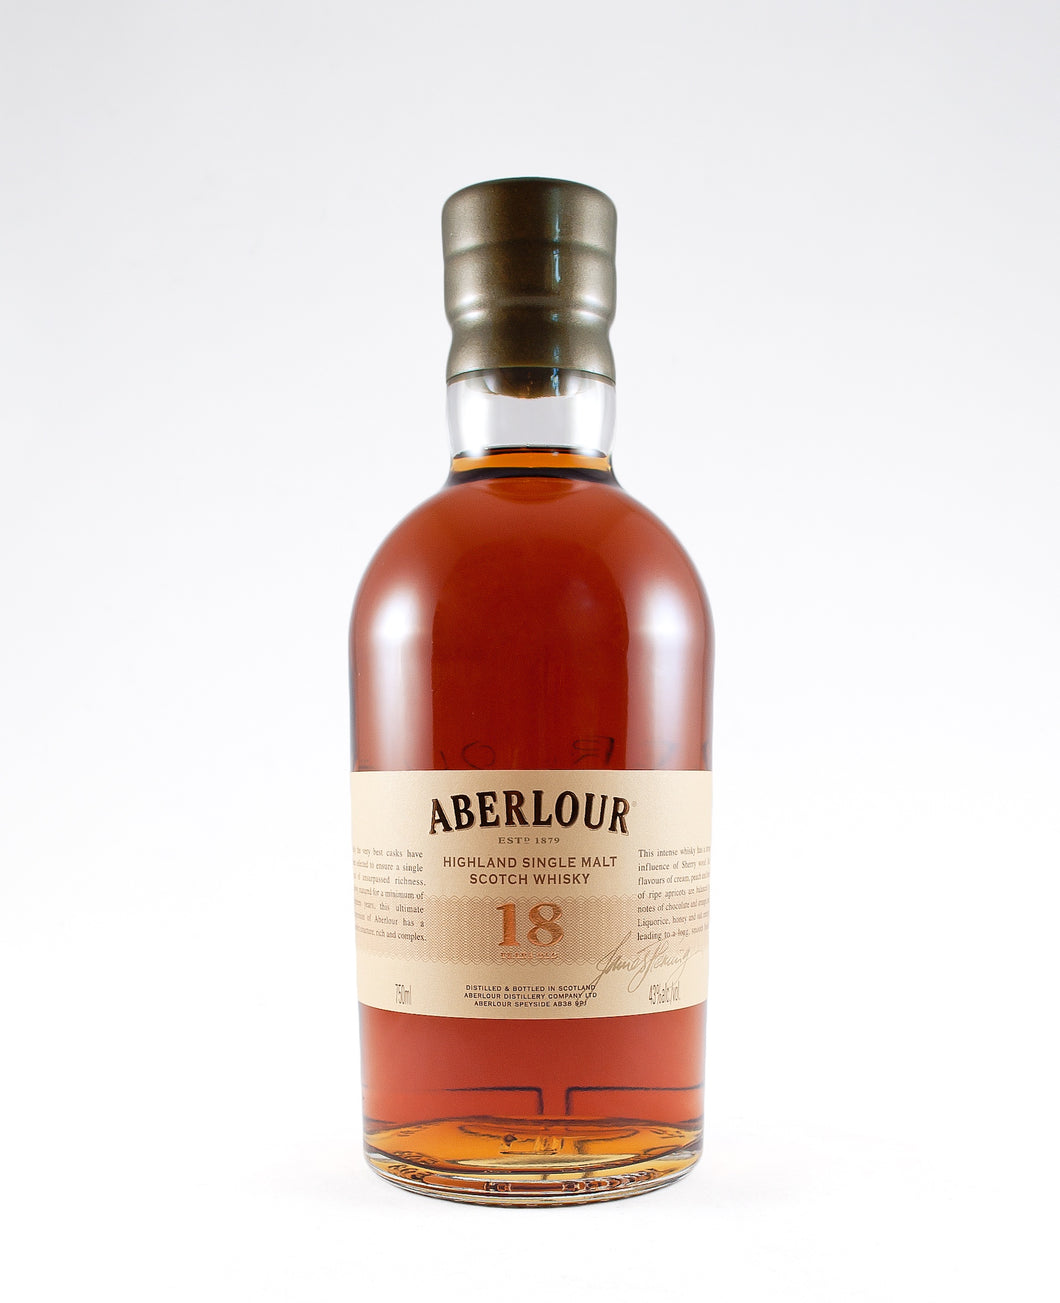 Aberlour 18 Year Old Highland Single Malt Scotch Whisky (Highland, Scotland)